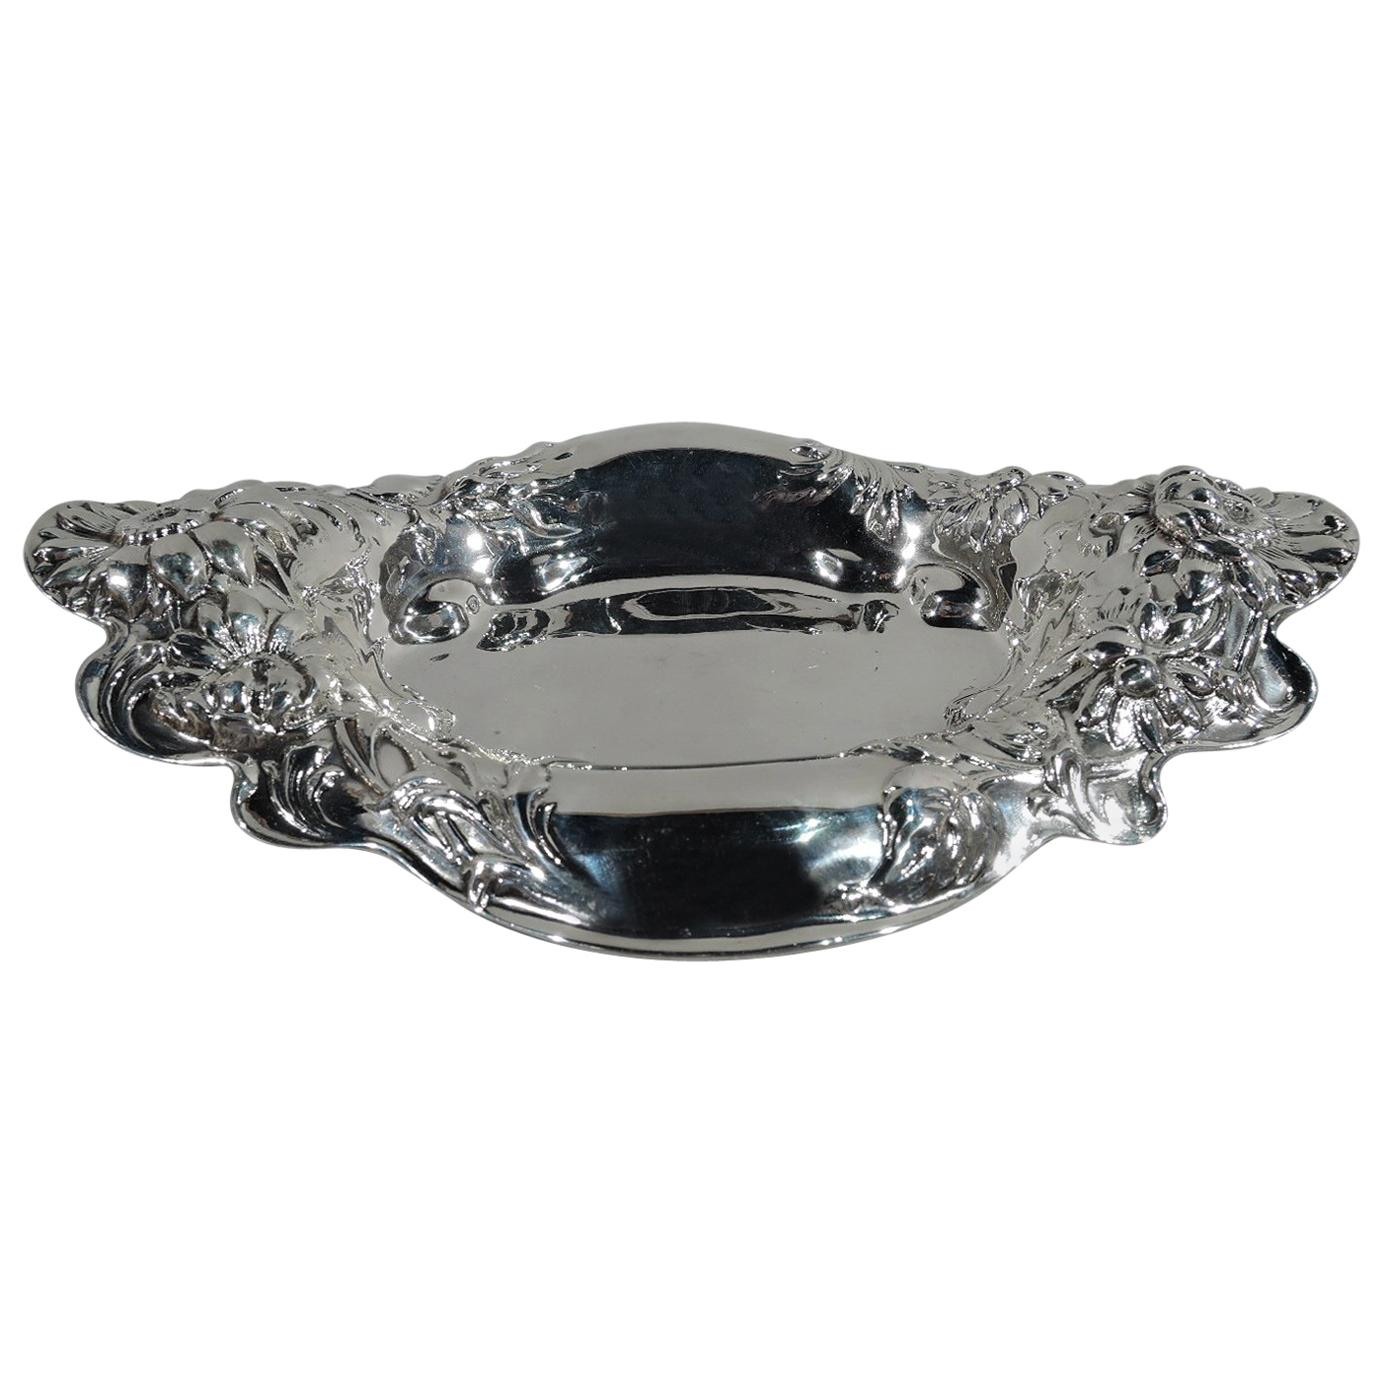 Antique American Art Nouveau Sterling Silver Bowl by Dominick & Haff